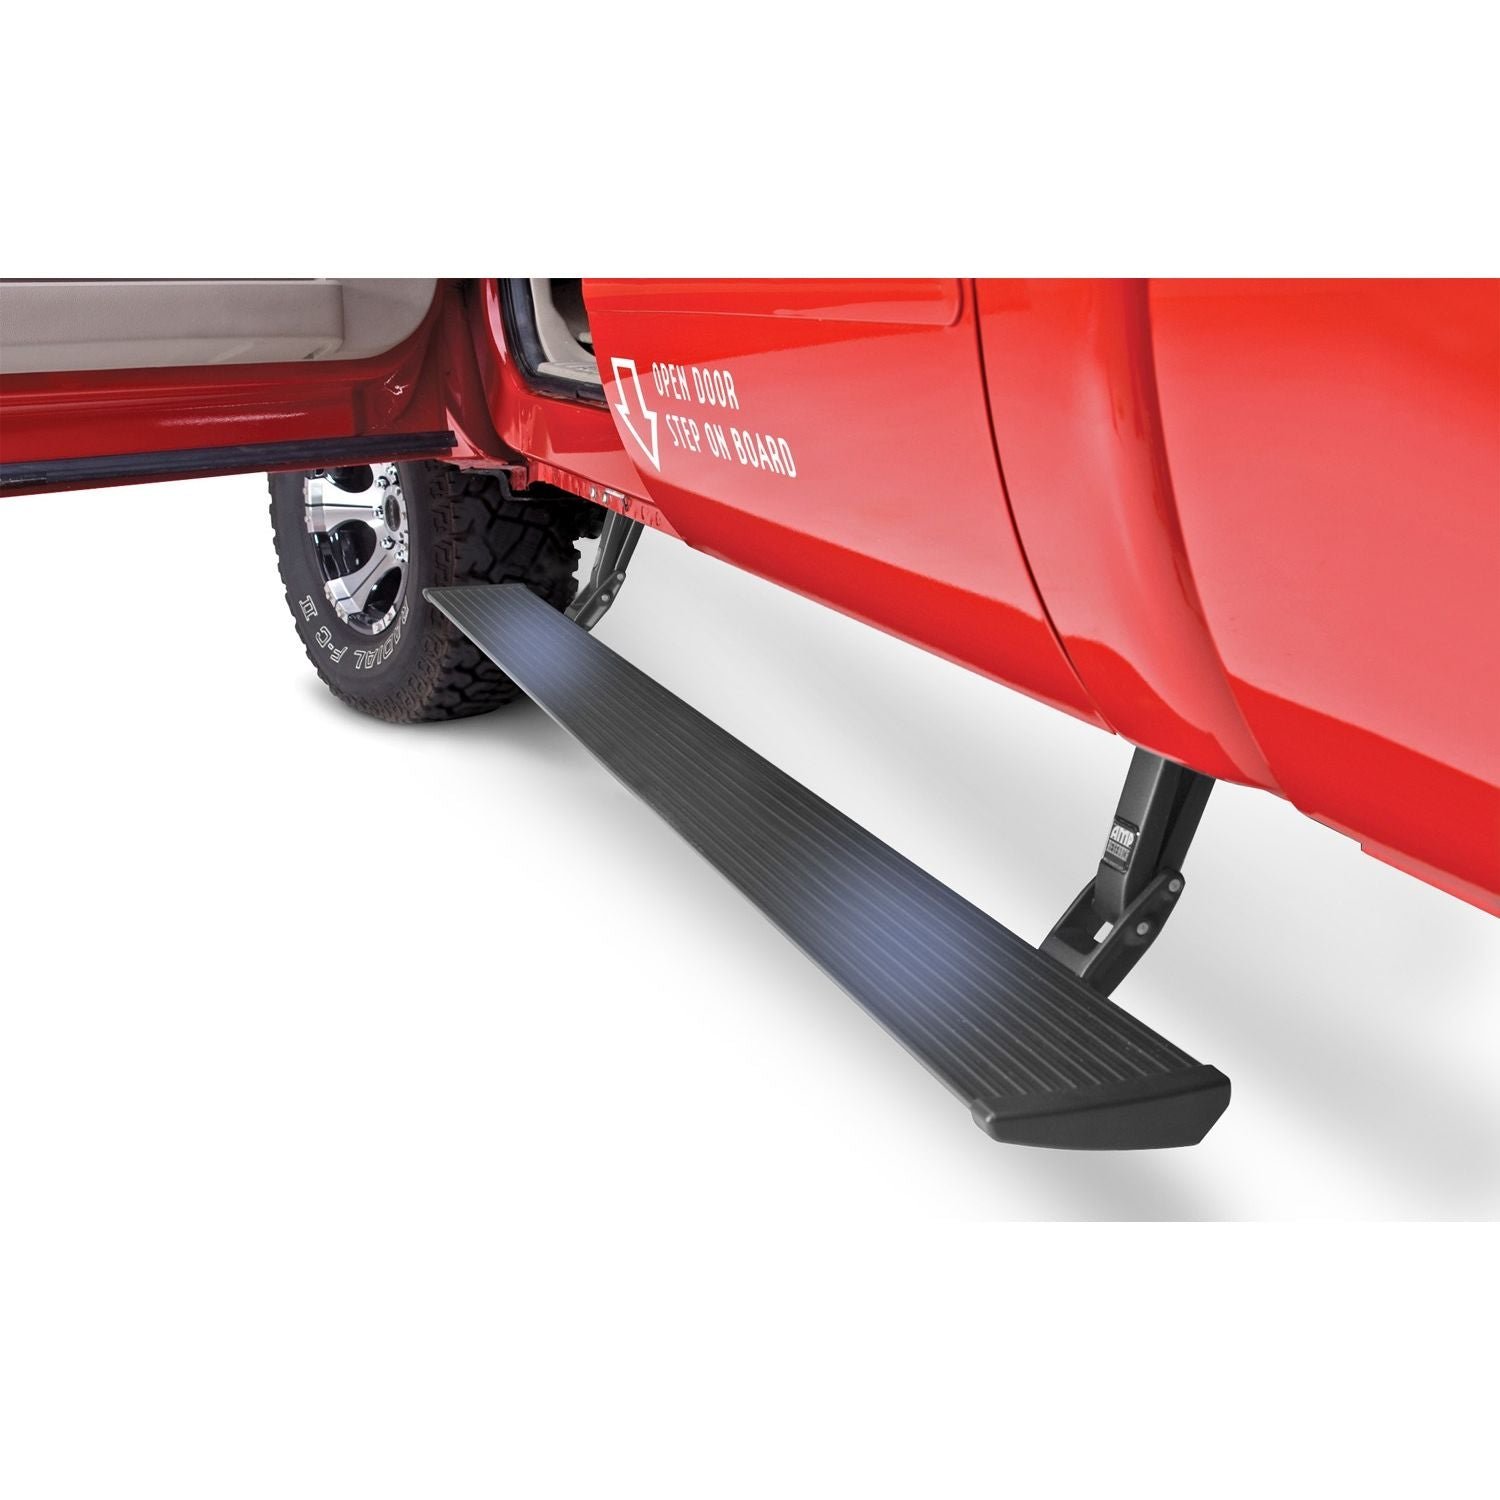 AMP Research PowerStep Electric Running Boards Plug N Play System for 2008-2016 Ford F-250/F-350/F-450 All Cabs - 76134-01A